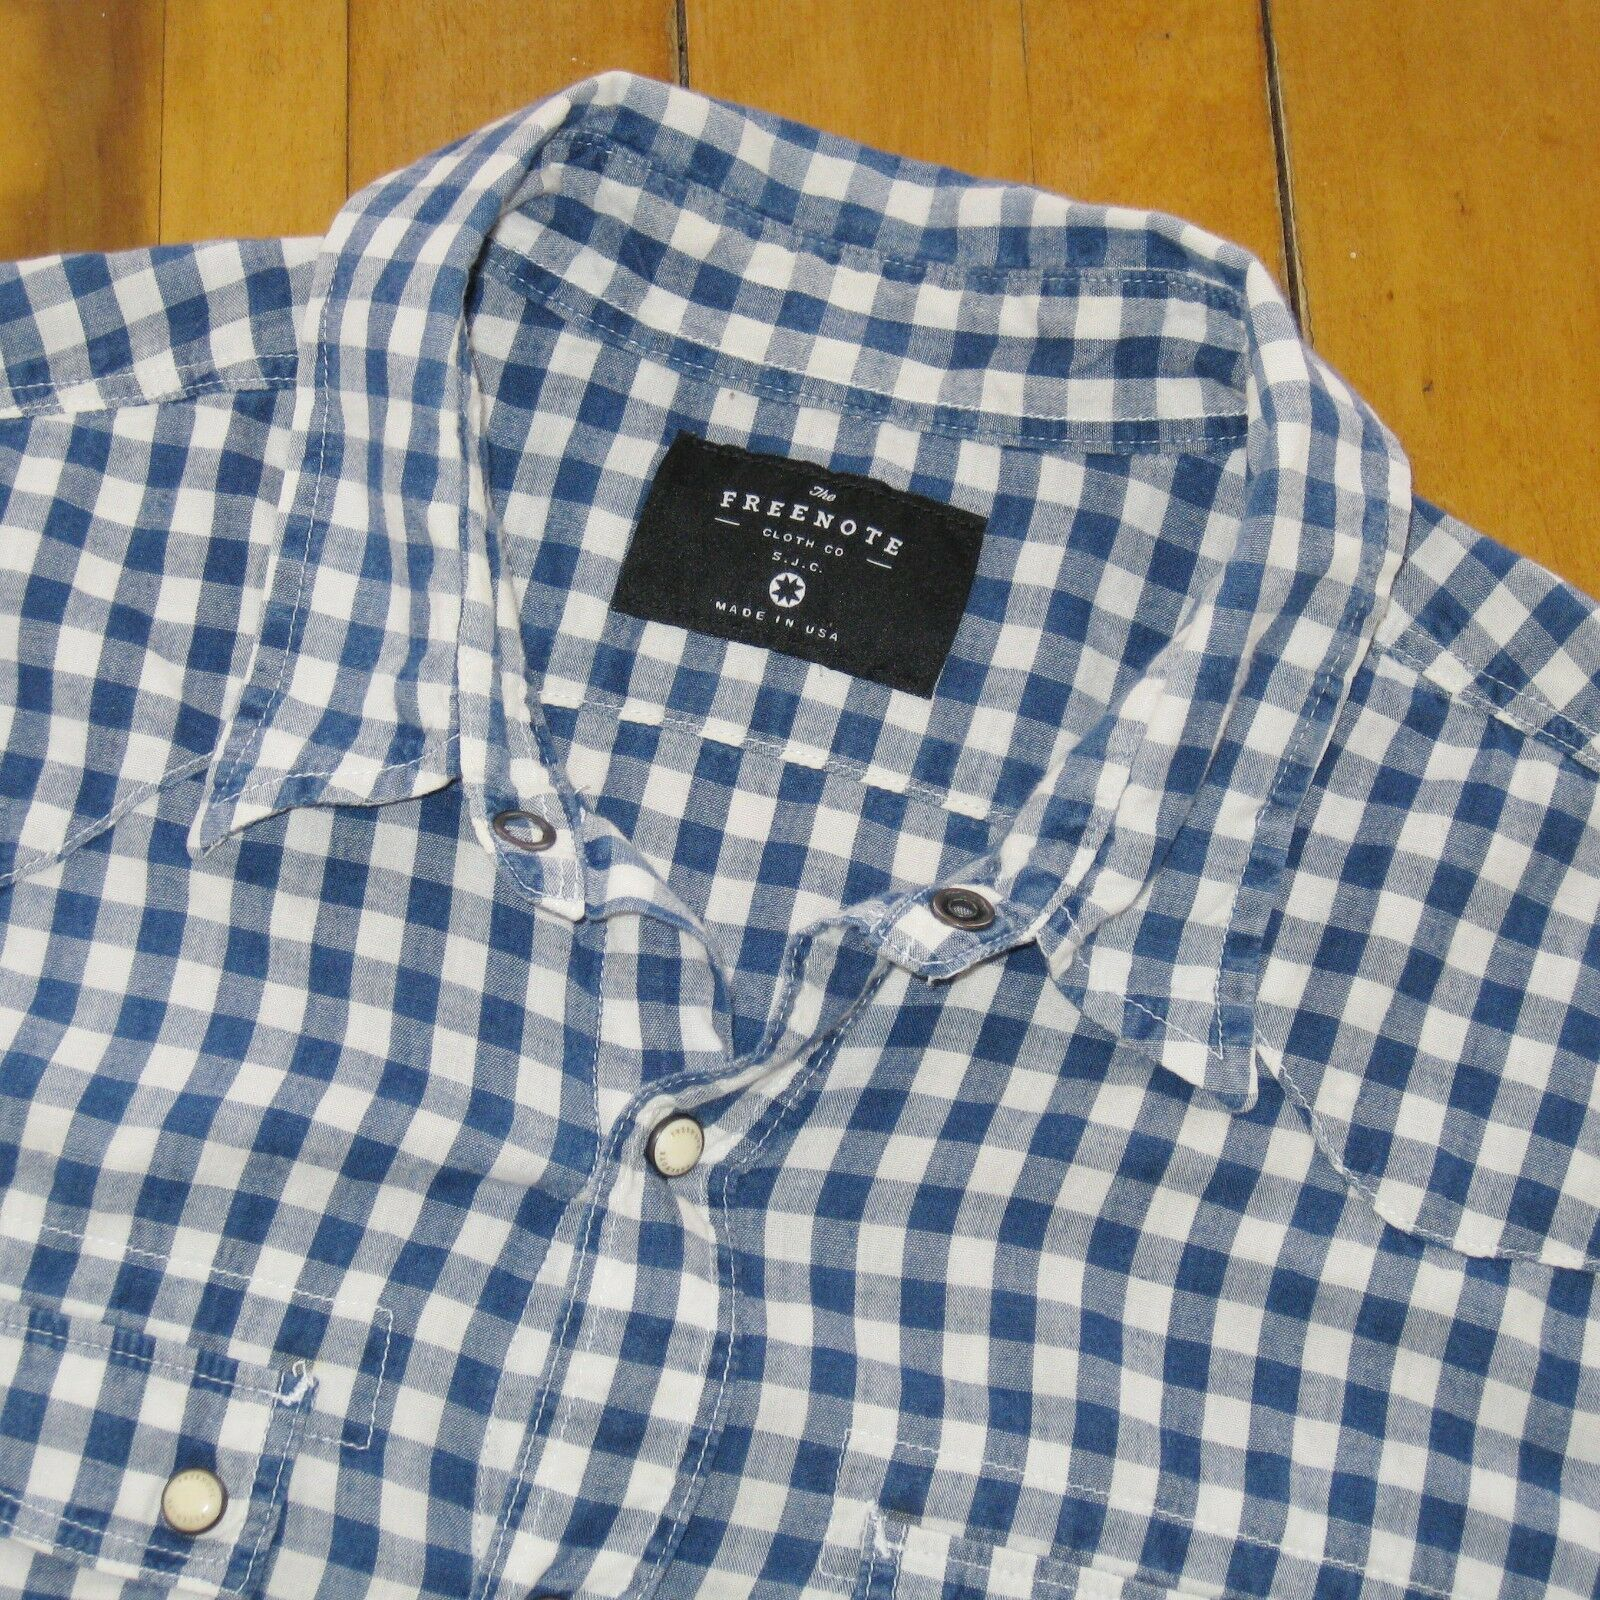 FREENOTE bluee White Gingham Snap Button Western Light Weight Shirt S Made In USA